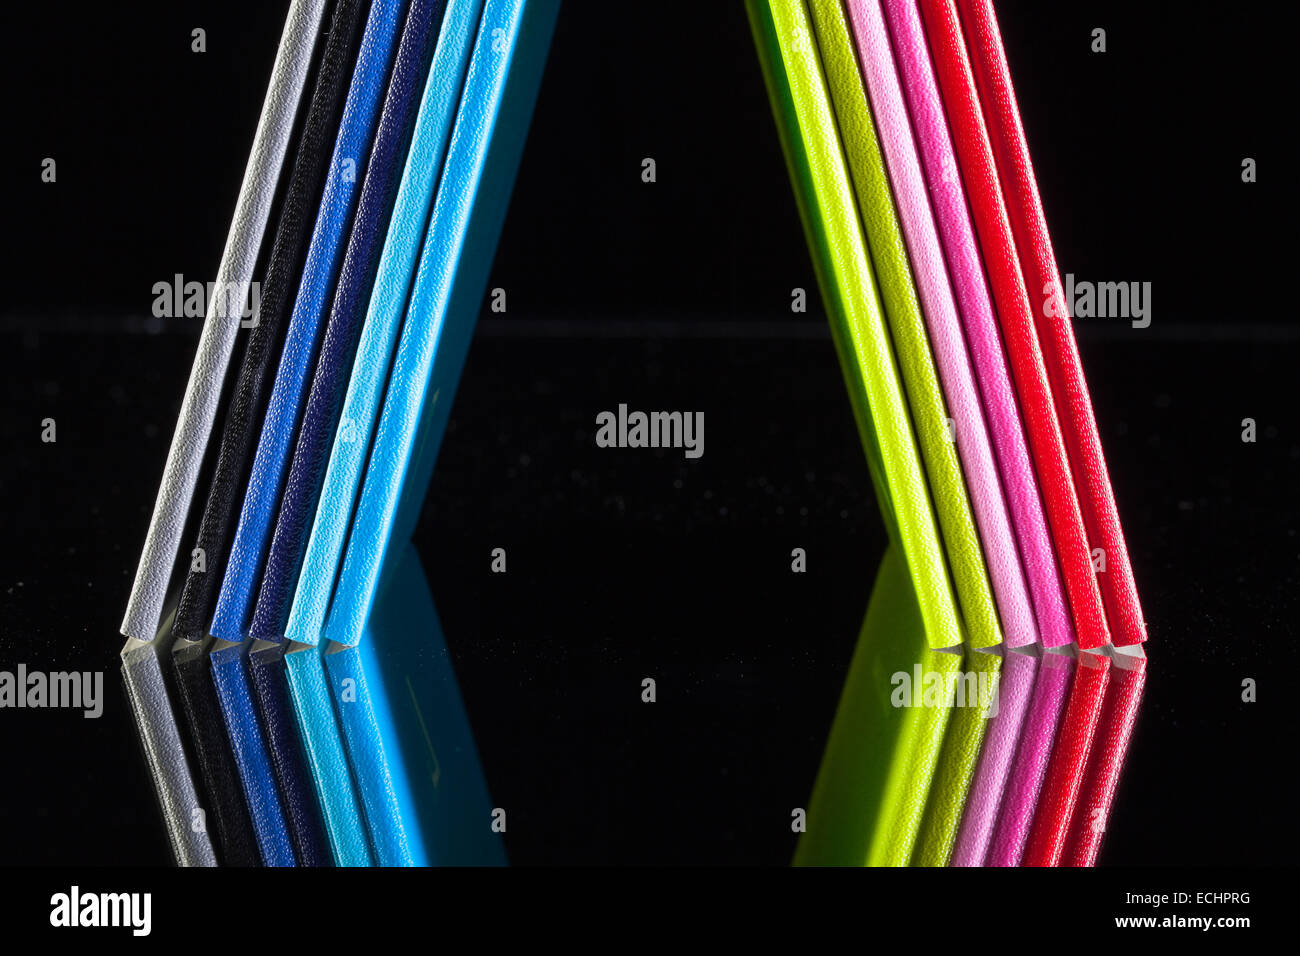 Twelve different colors diaries on a glass desk - Stock Image